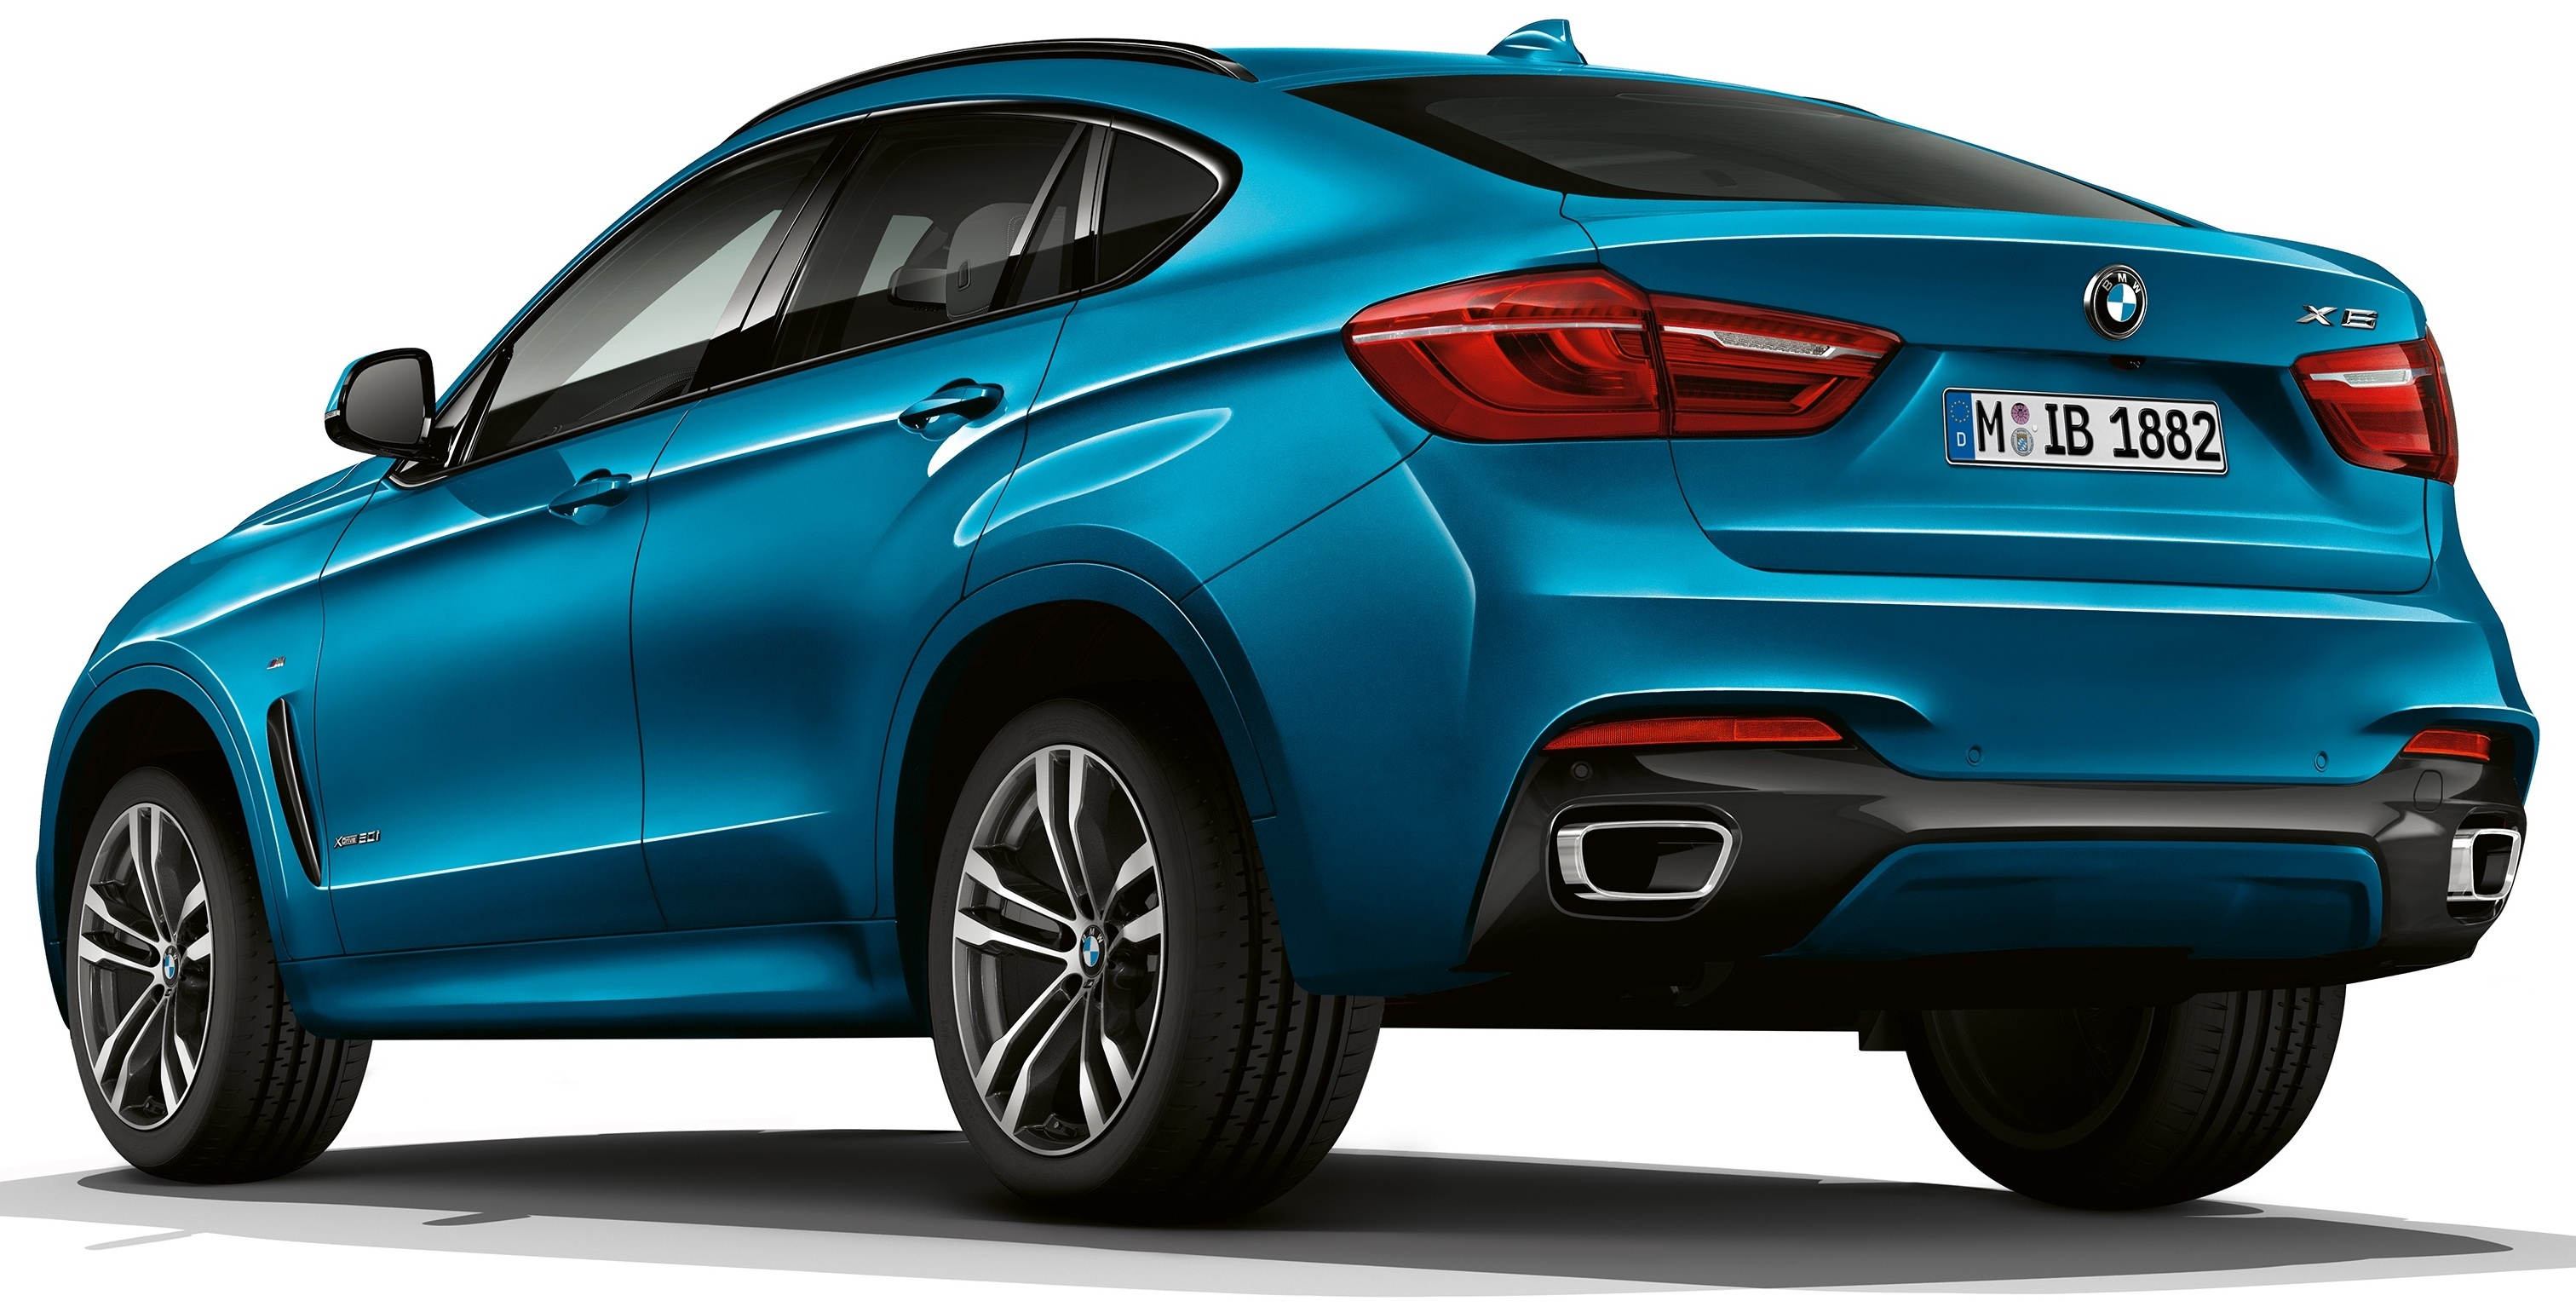 Bmw X5 Special Edition X6 M Sport Edition Unveiled Paul Tan Image